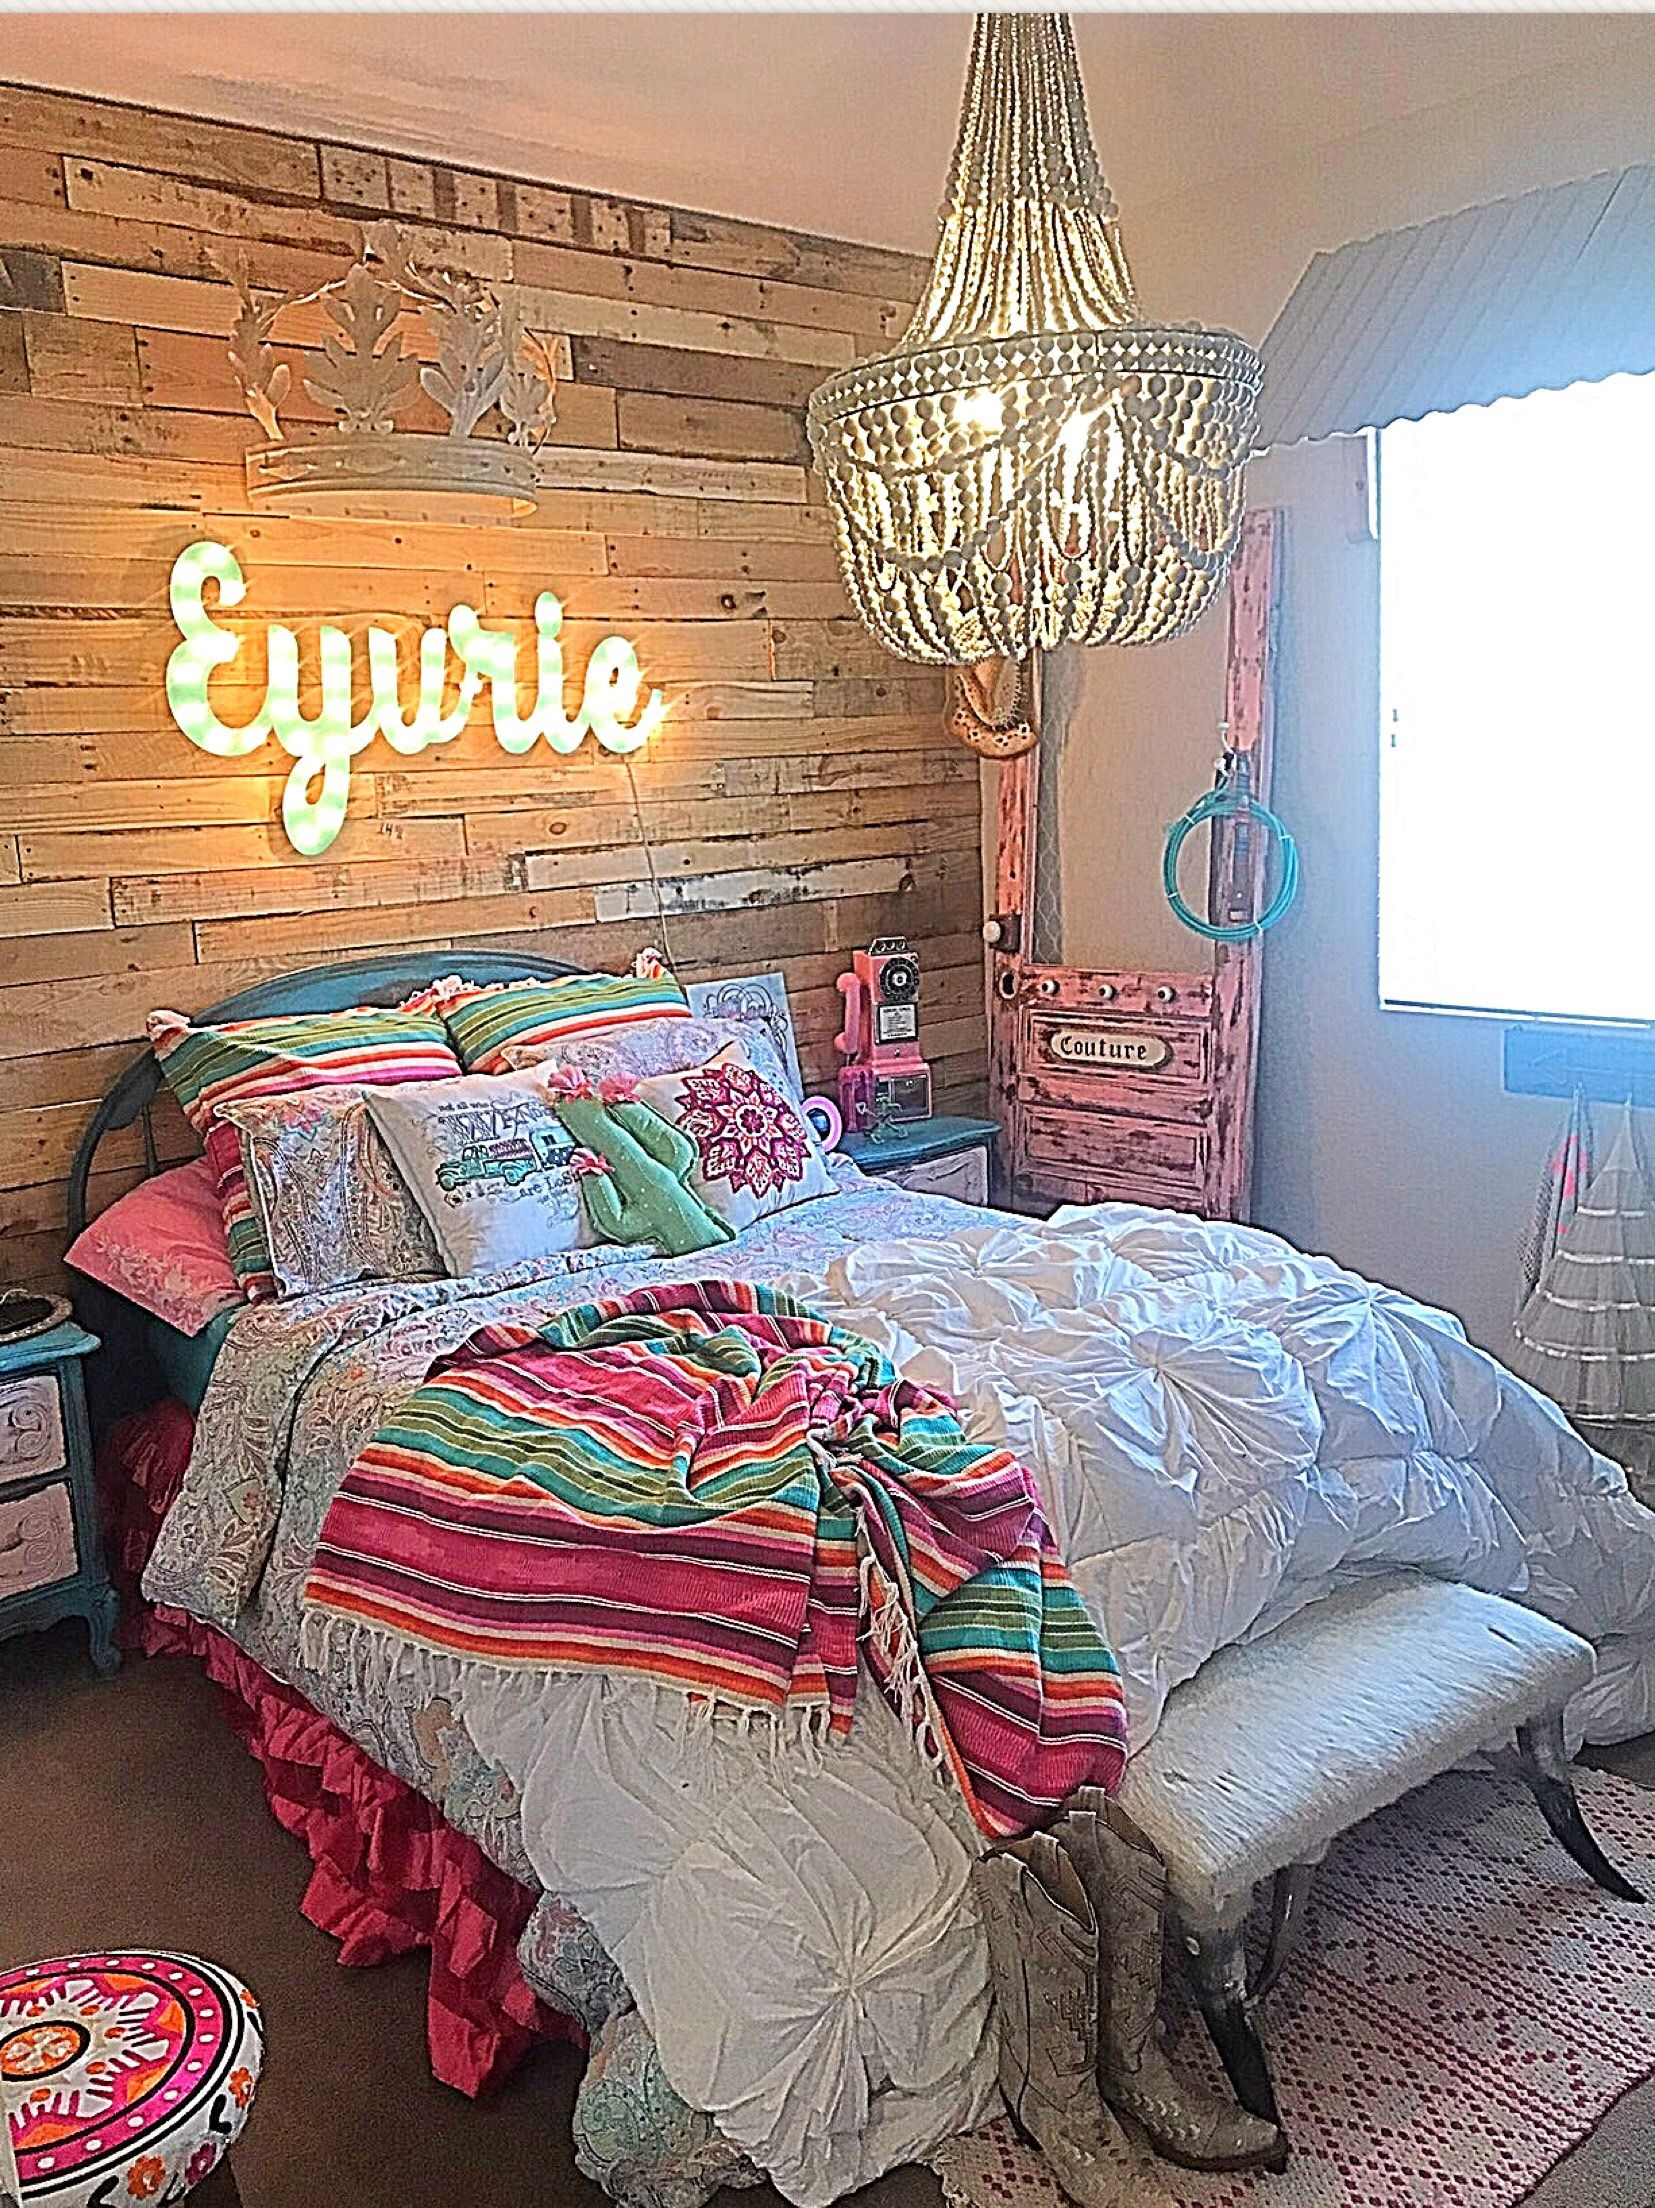 Junk Gypsy theme room by designer Michele Velasco of thefunkgypsy